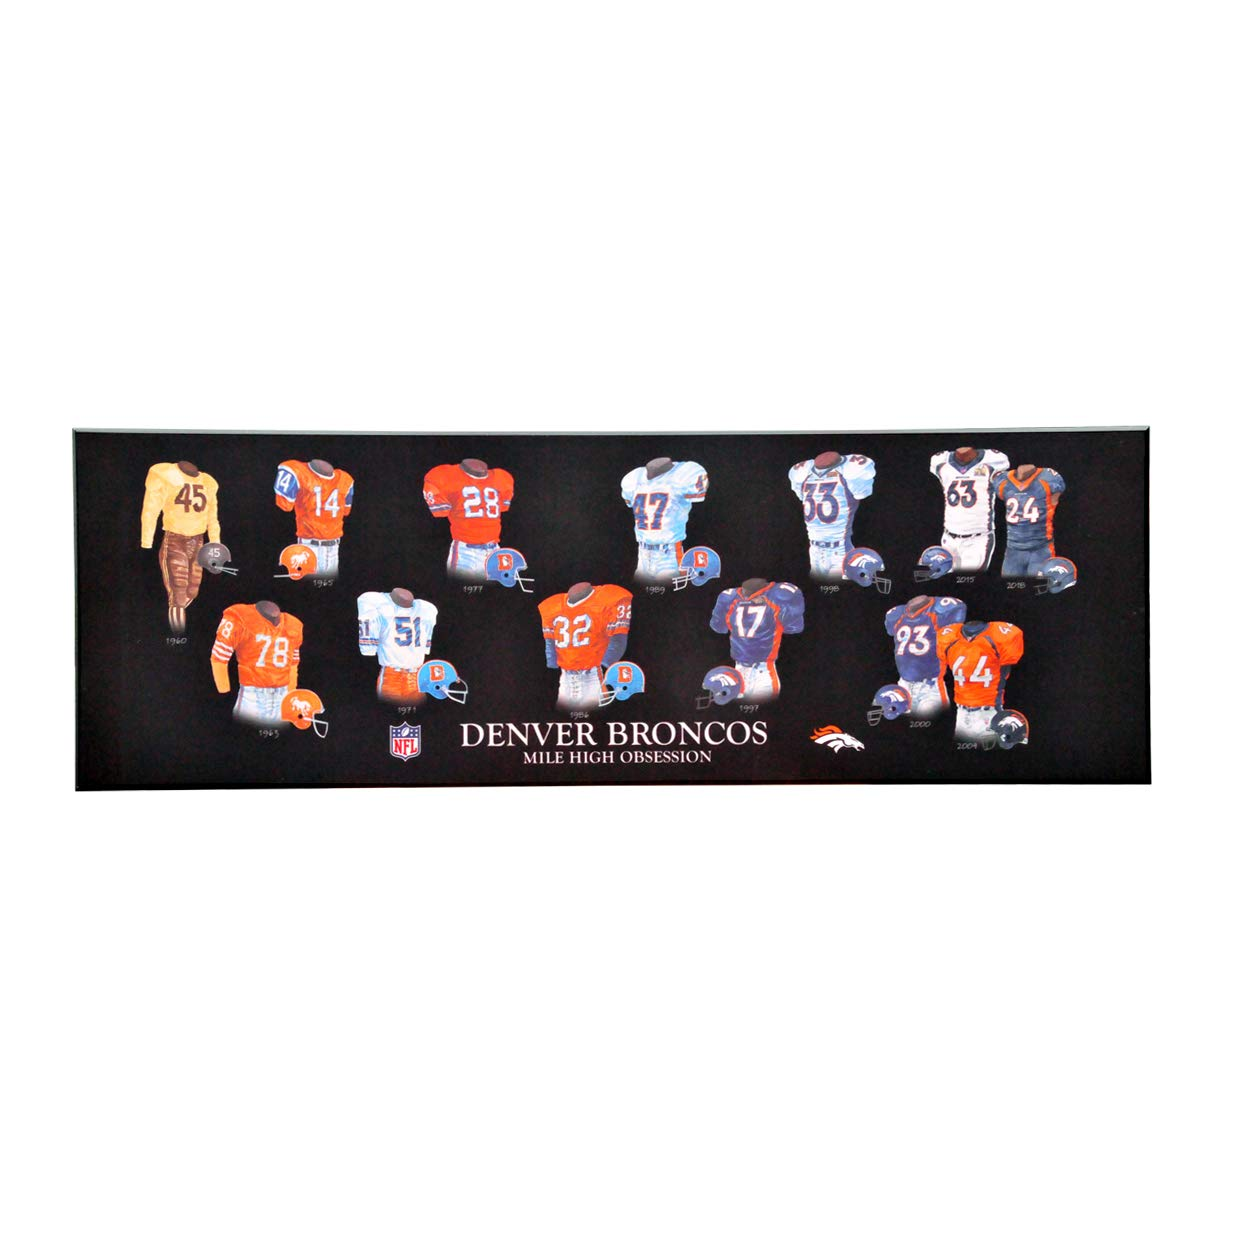 Black One Size Winning Streak NFL Denver Broncos Legacy Uniform Collection Plaque